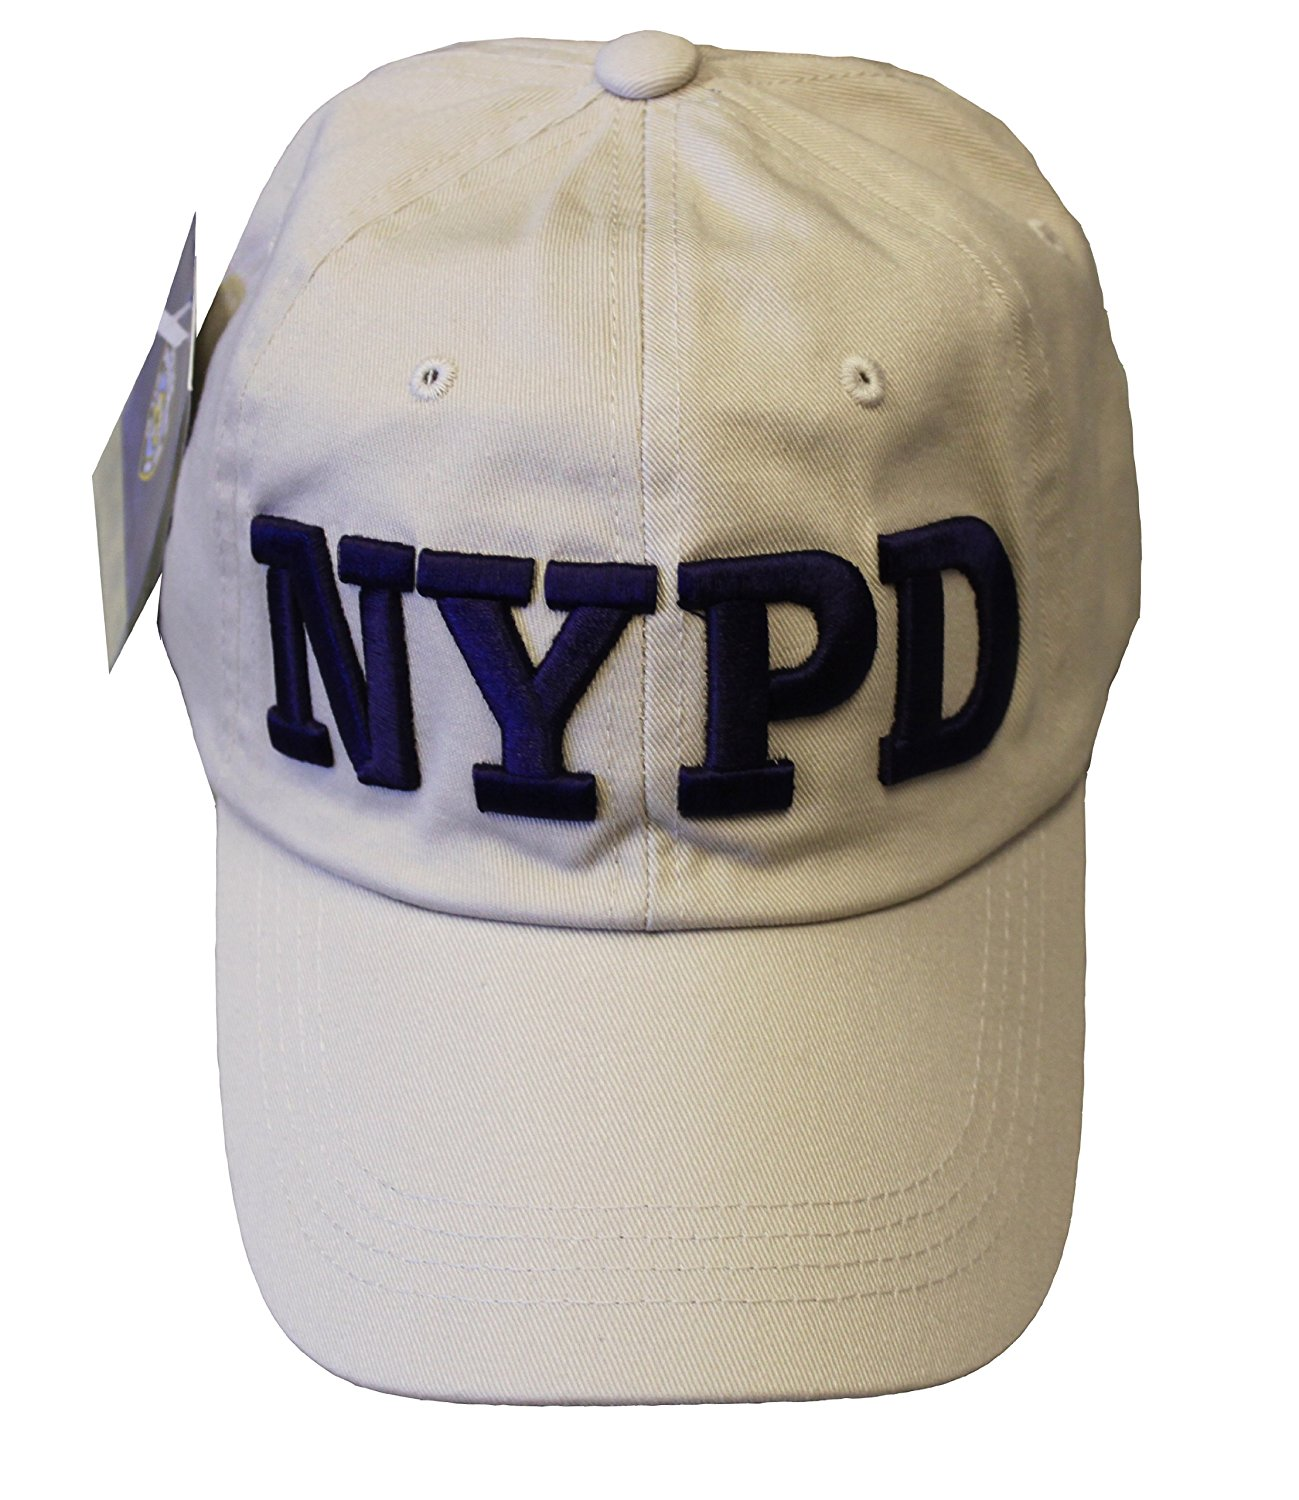 0f6a4a45f Cheap Police Man Hat, find Police Man Hat deals on line at Alibaba.com